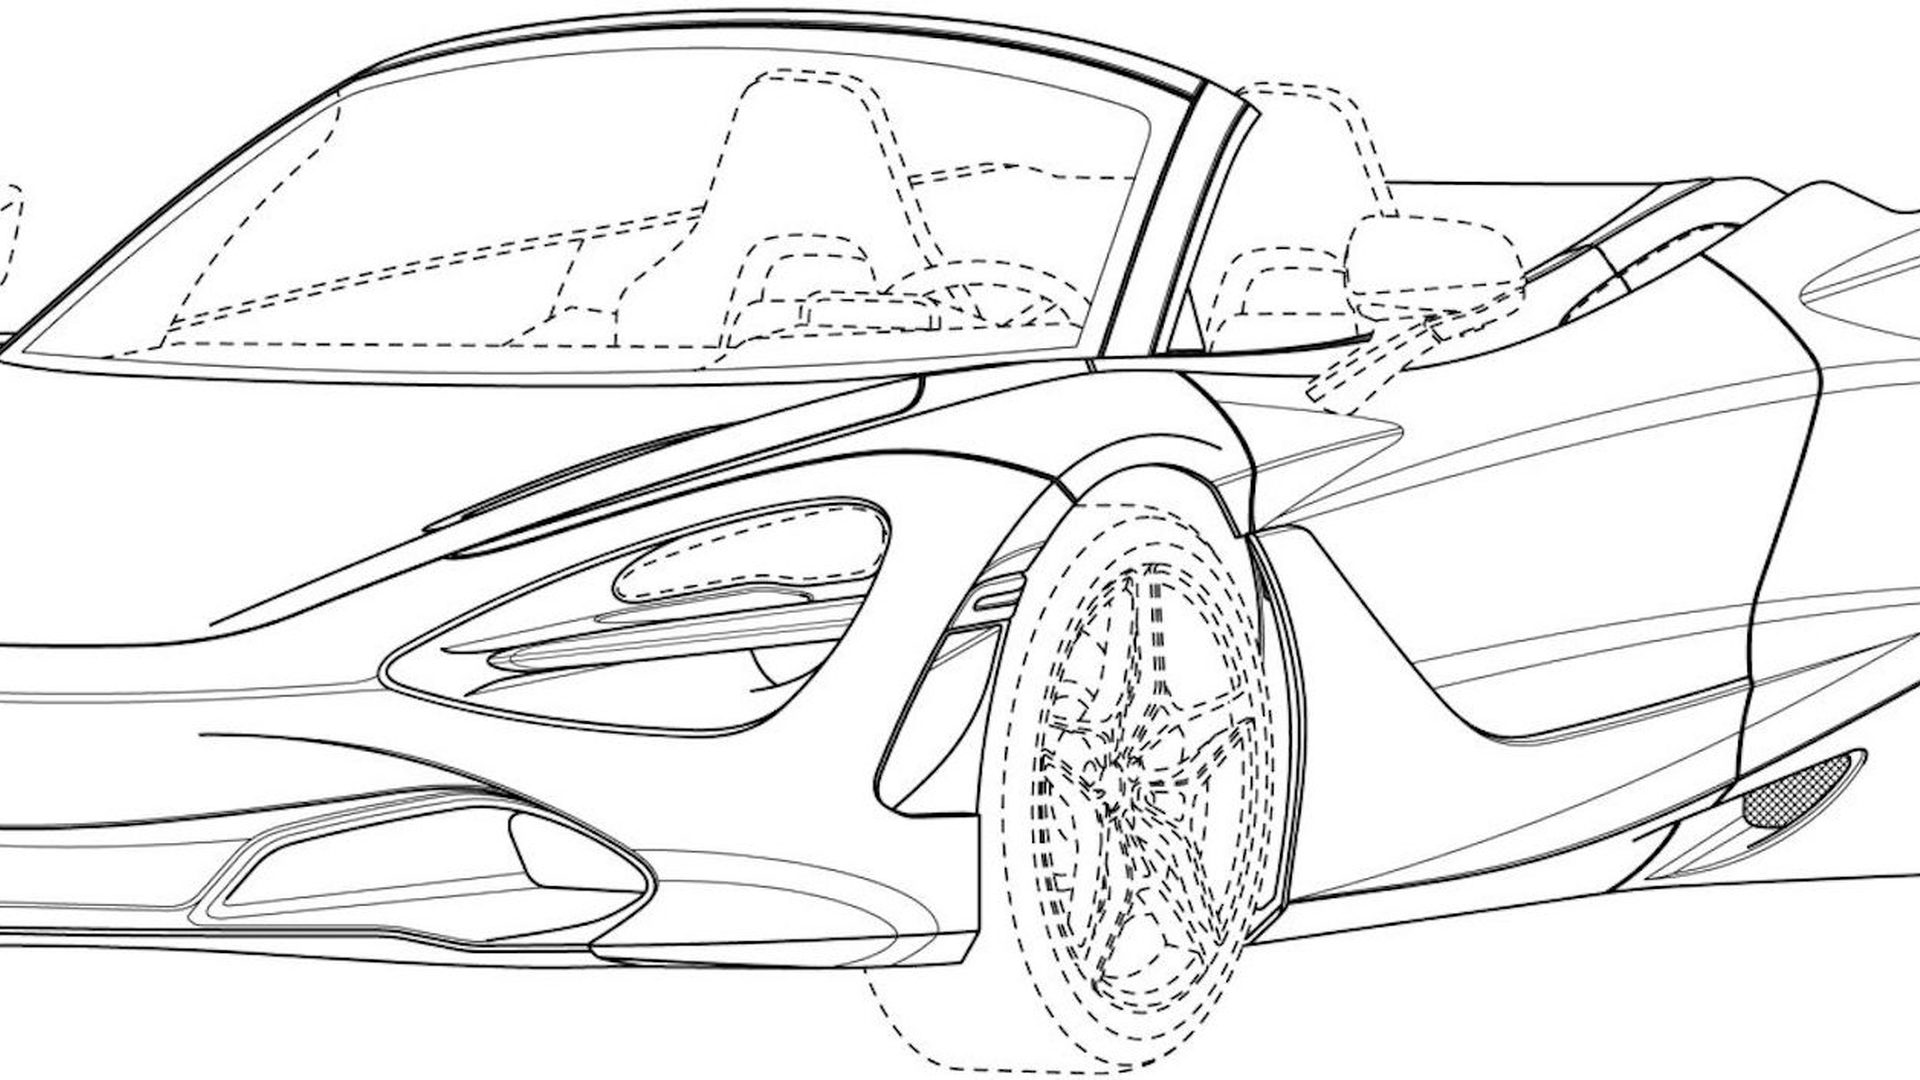 hight resolution of mclaren 720s spider patent drawings